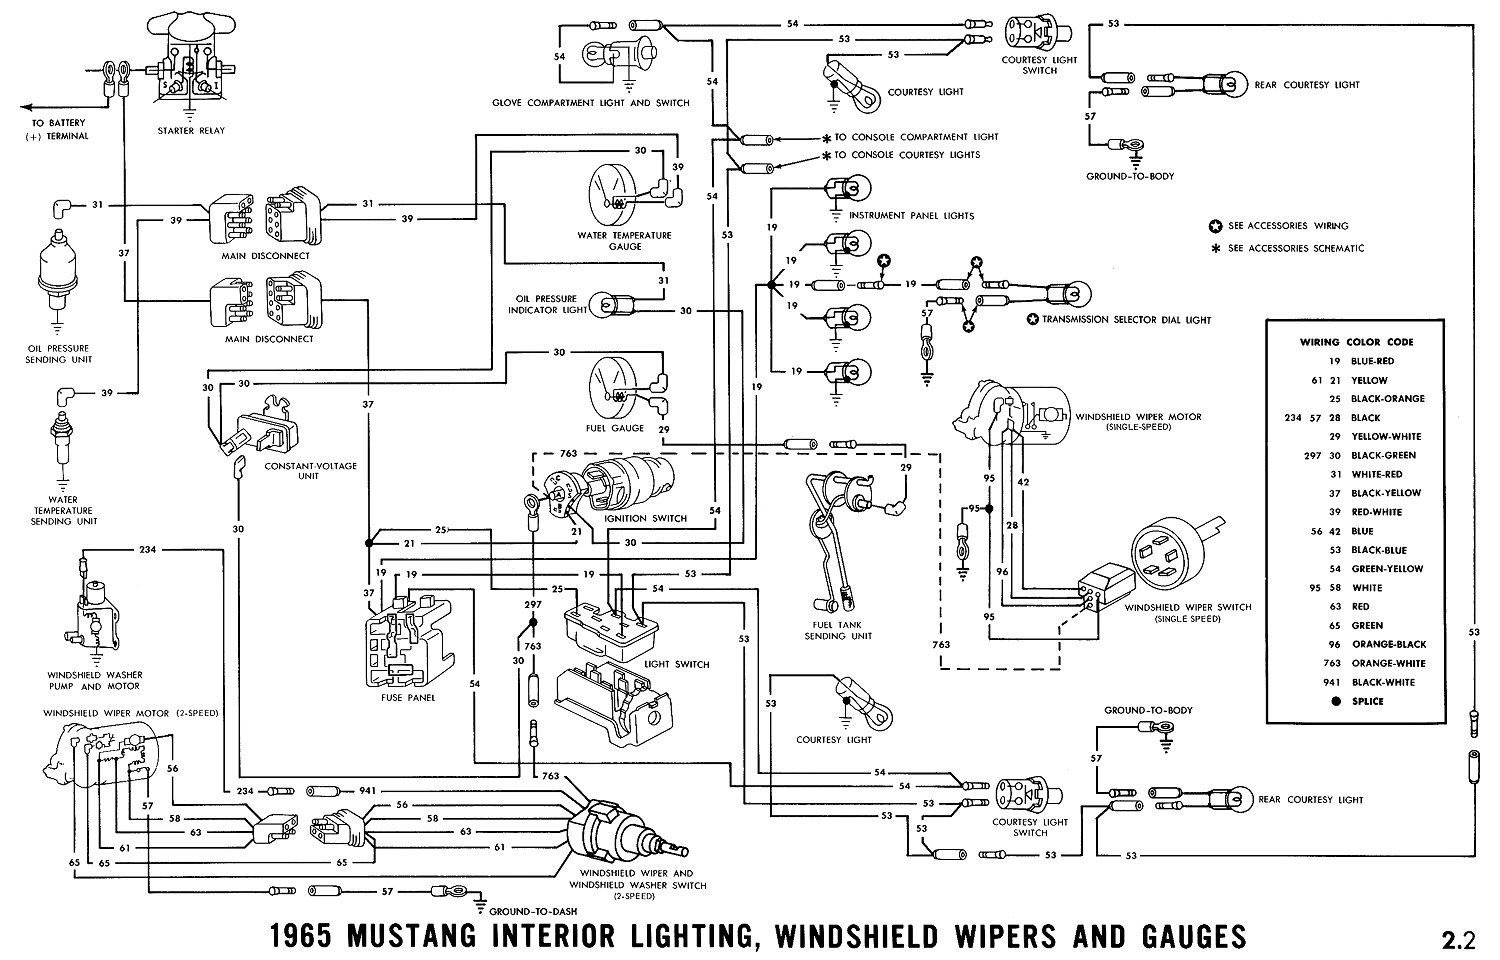 Lamp Wiring Diagram 1970 Mustang Sport Worksheet And 1974 Ford Torino 1965 Diagrams Average Joe Restoration Rh Averagejoerestoration Com 1973 For 1984